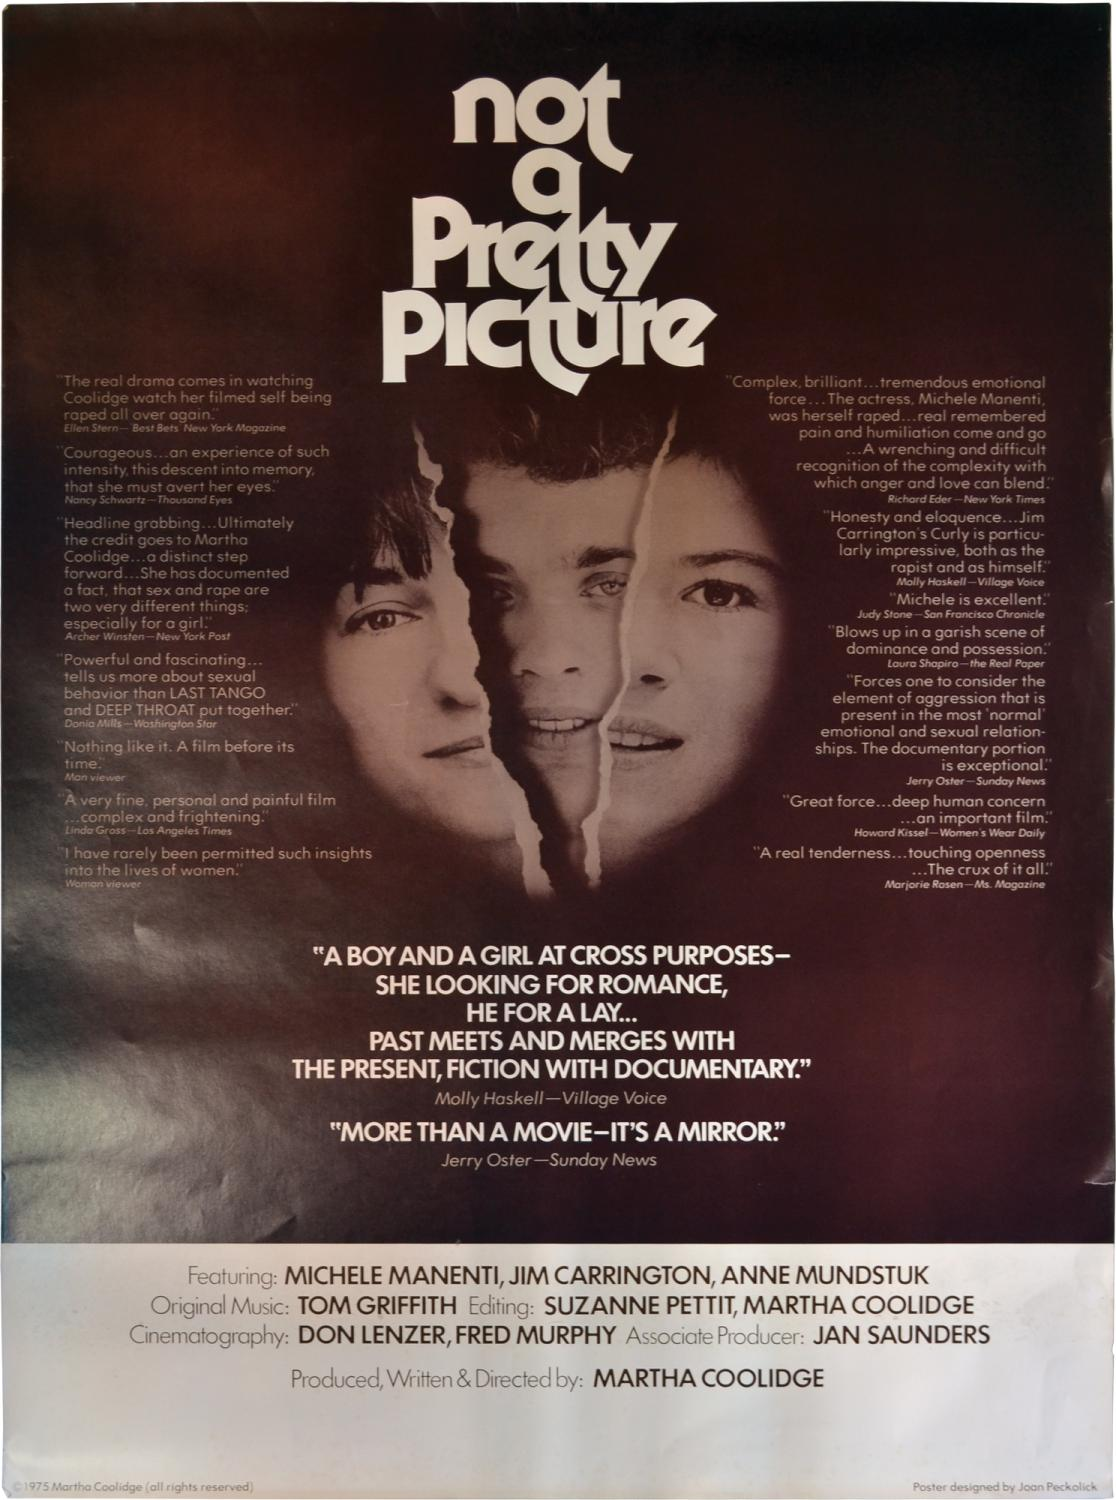 Not a Pretty Picture (Original poster for the 1976 film) by Coolidge,  Martha (director, screenwriter, producer); Amy Wright, Reed Birney  (starring): (1975) Art/Print/Poster | Royal Books,  Inc., ABAA